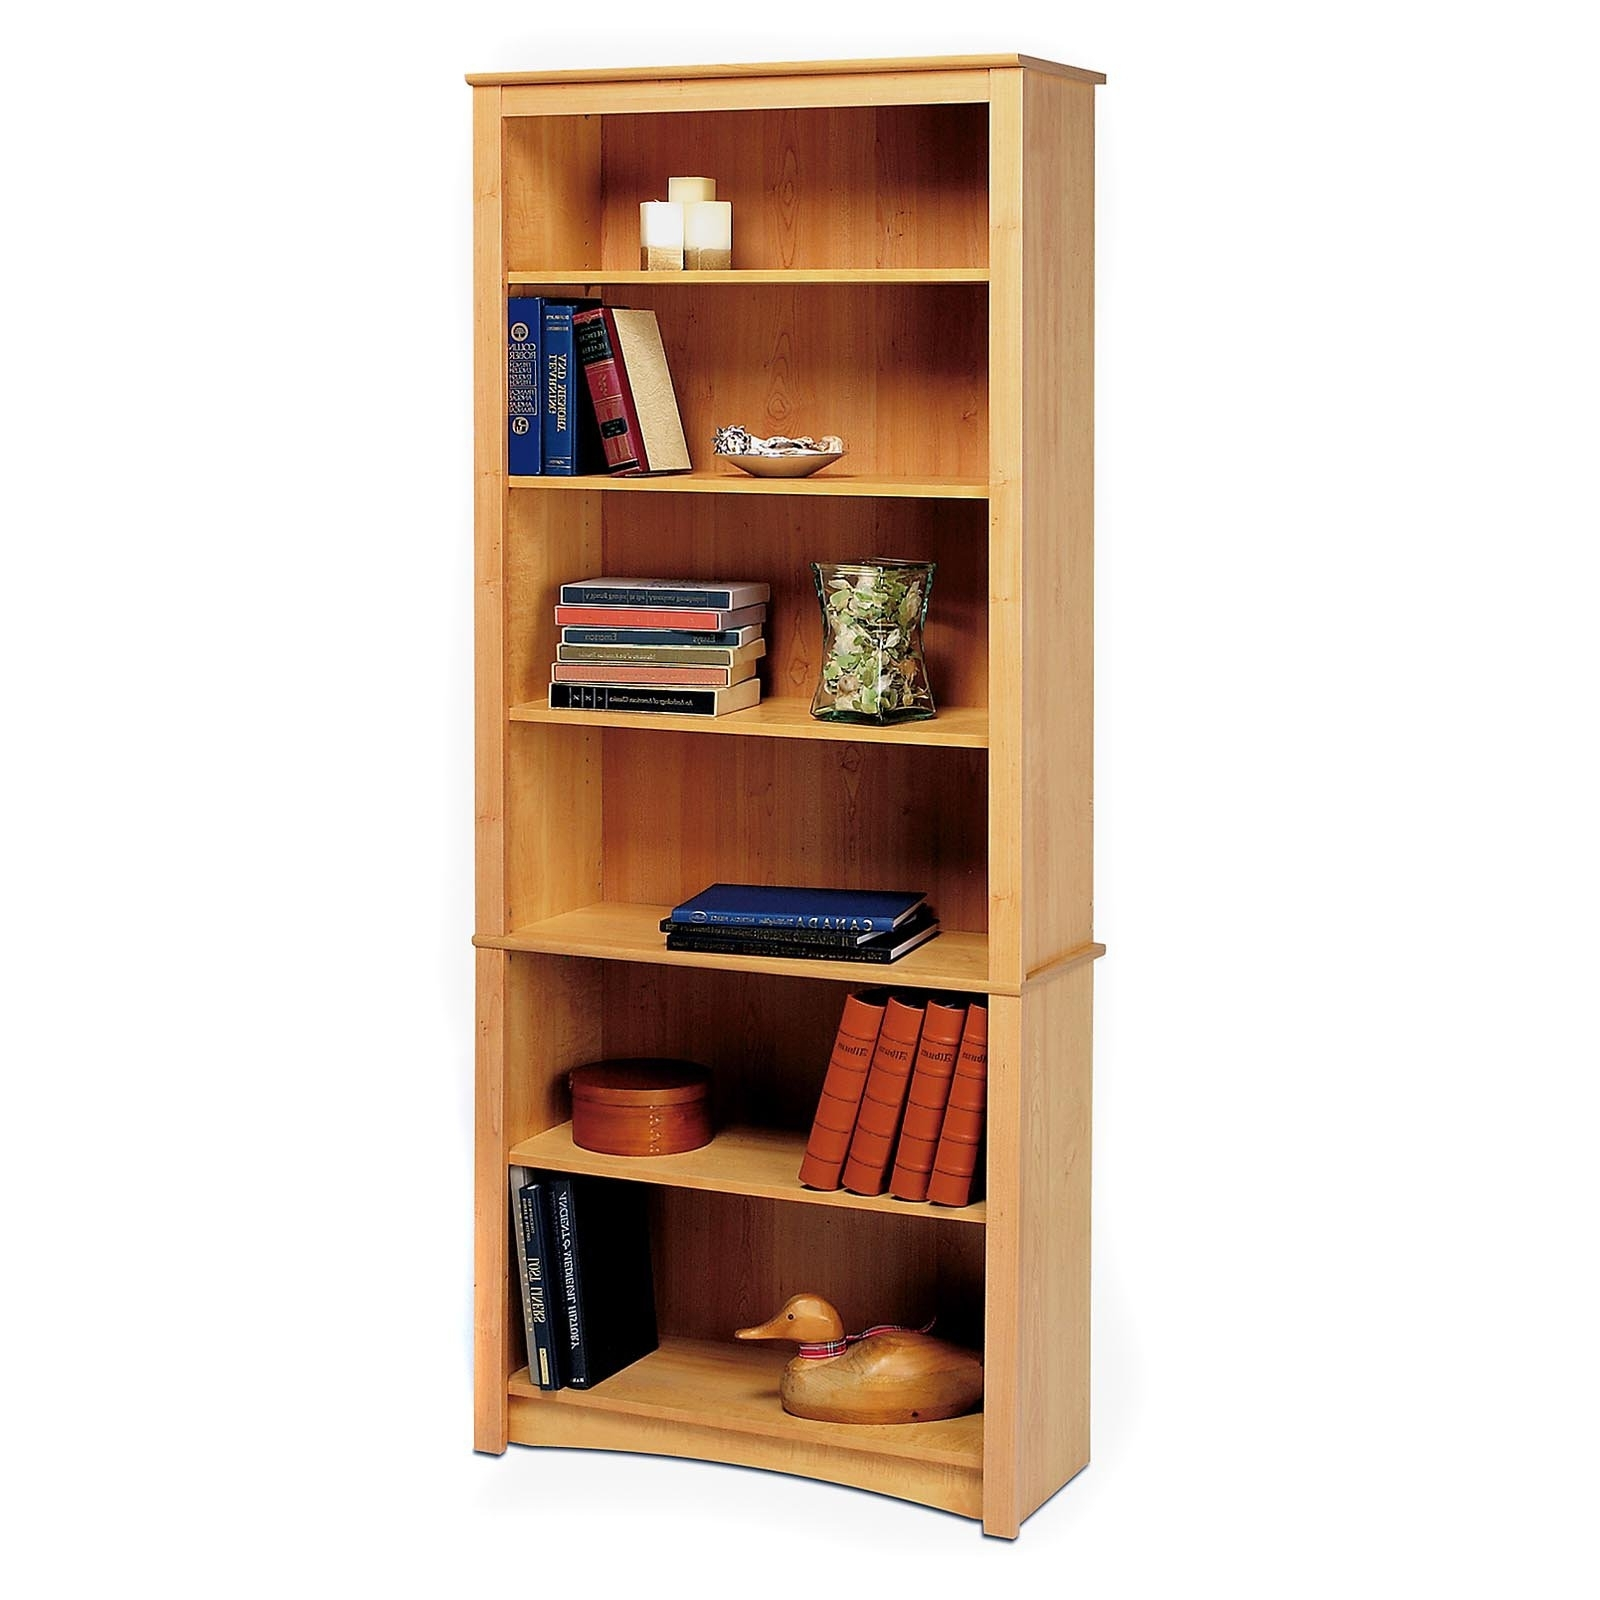 6 Shelf Bookcases With Well Liked Chris Book Shelf The Wood Whisperer ~ Idolza (View 9 of 15)